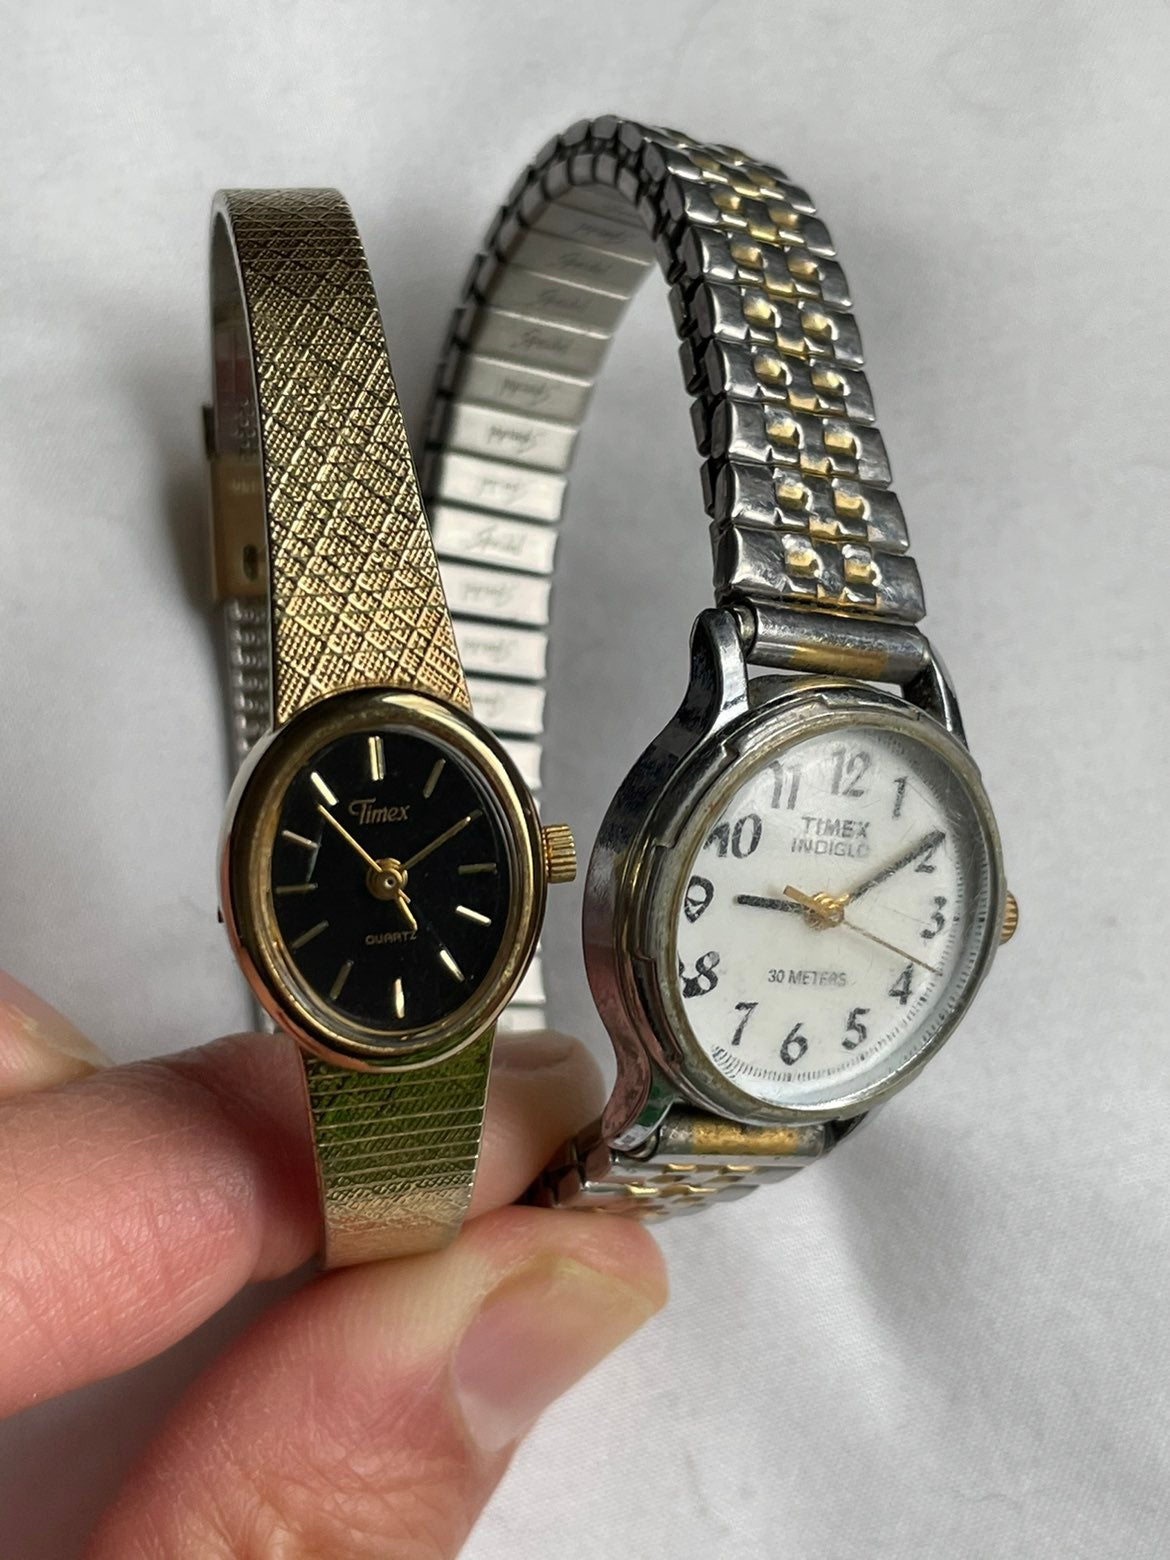 Two vintage Timex watches